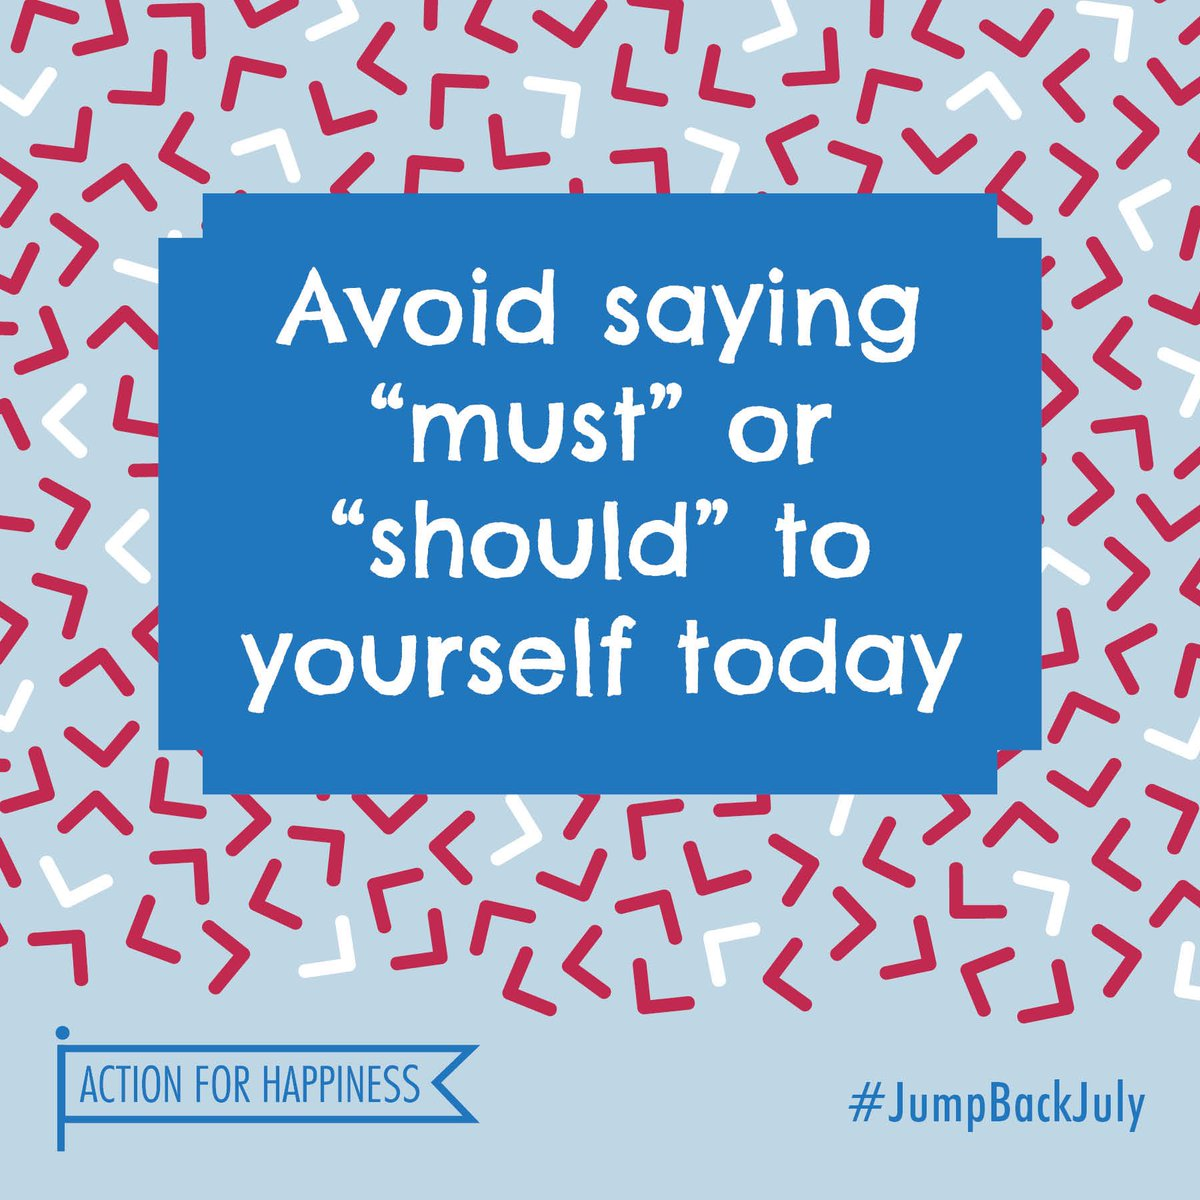 Jump Back July - Day 5: Avoid saying must or should to yourself today actionforhappiness.org/jump-back-july #JumpBackJuly